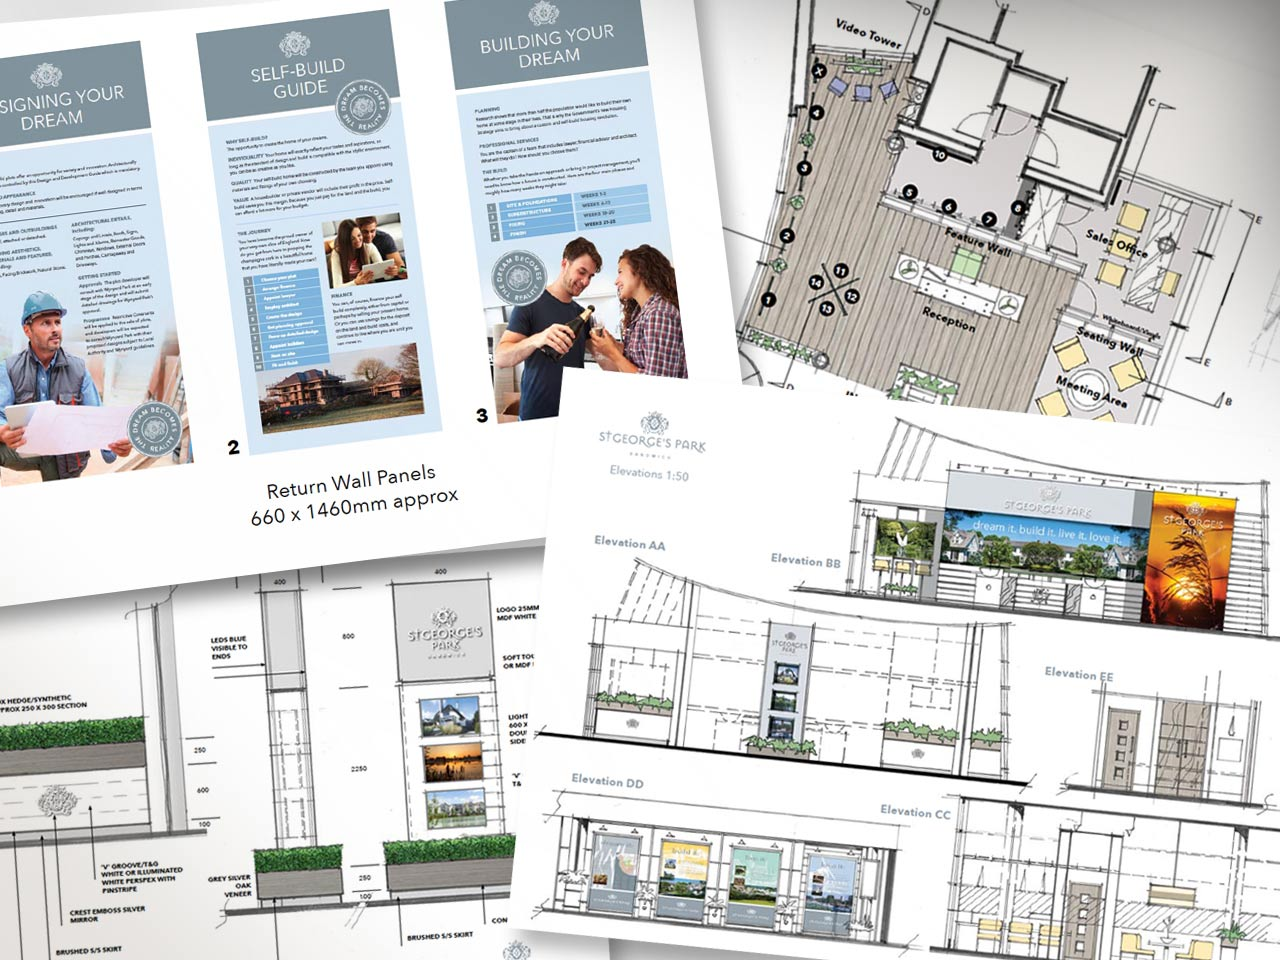 Conceptual drawings for the marketing suite interior